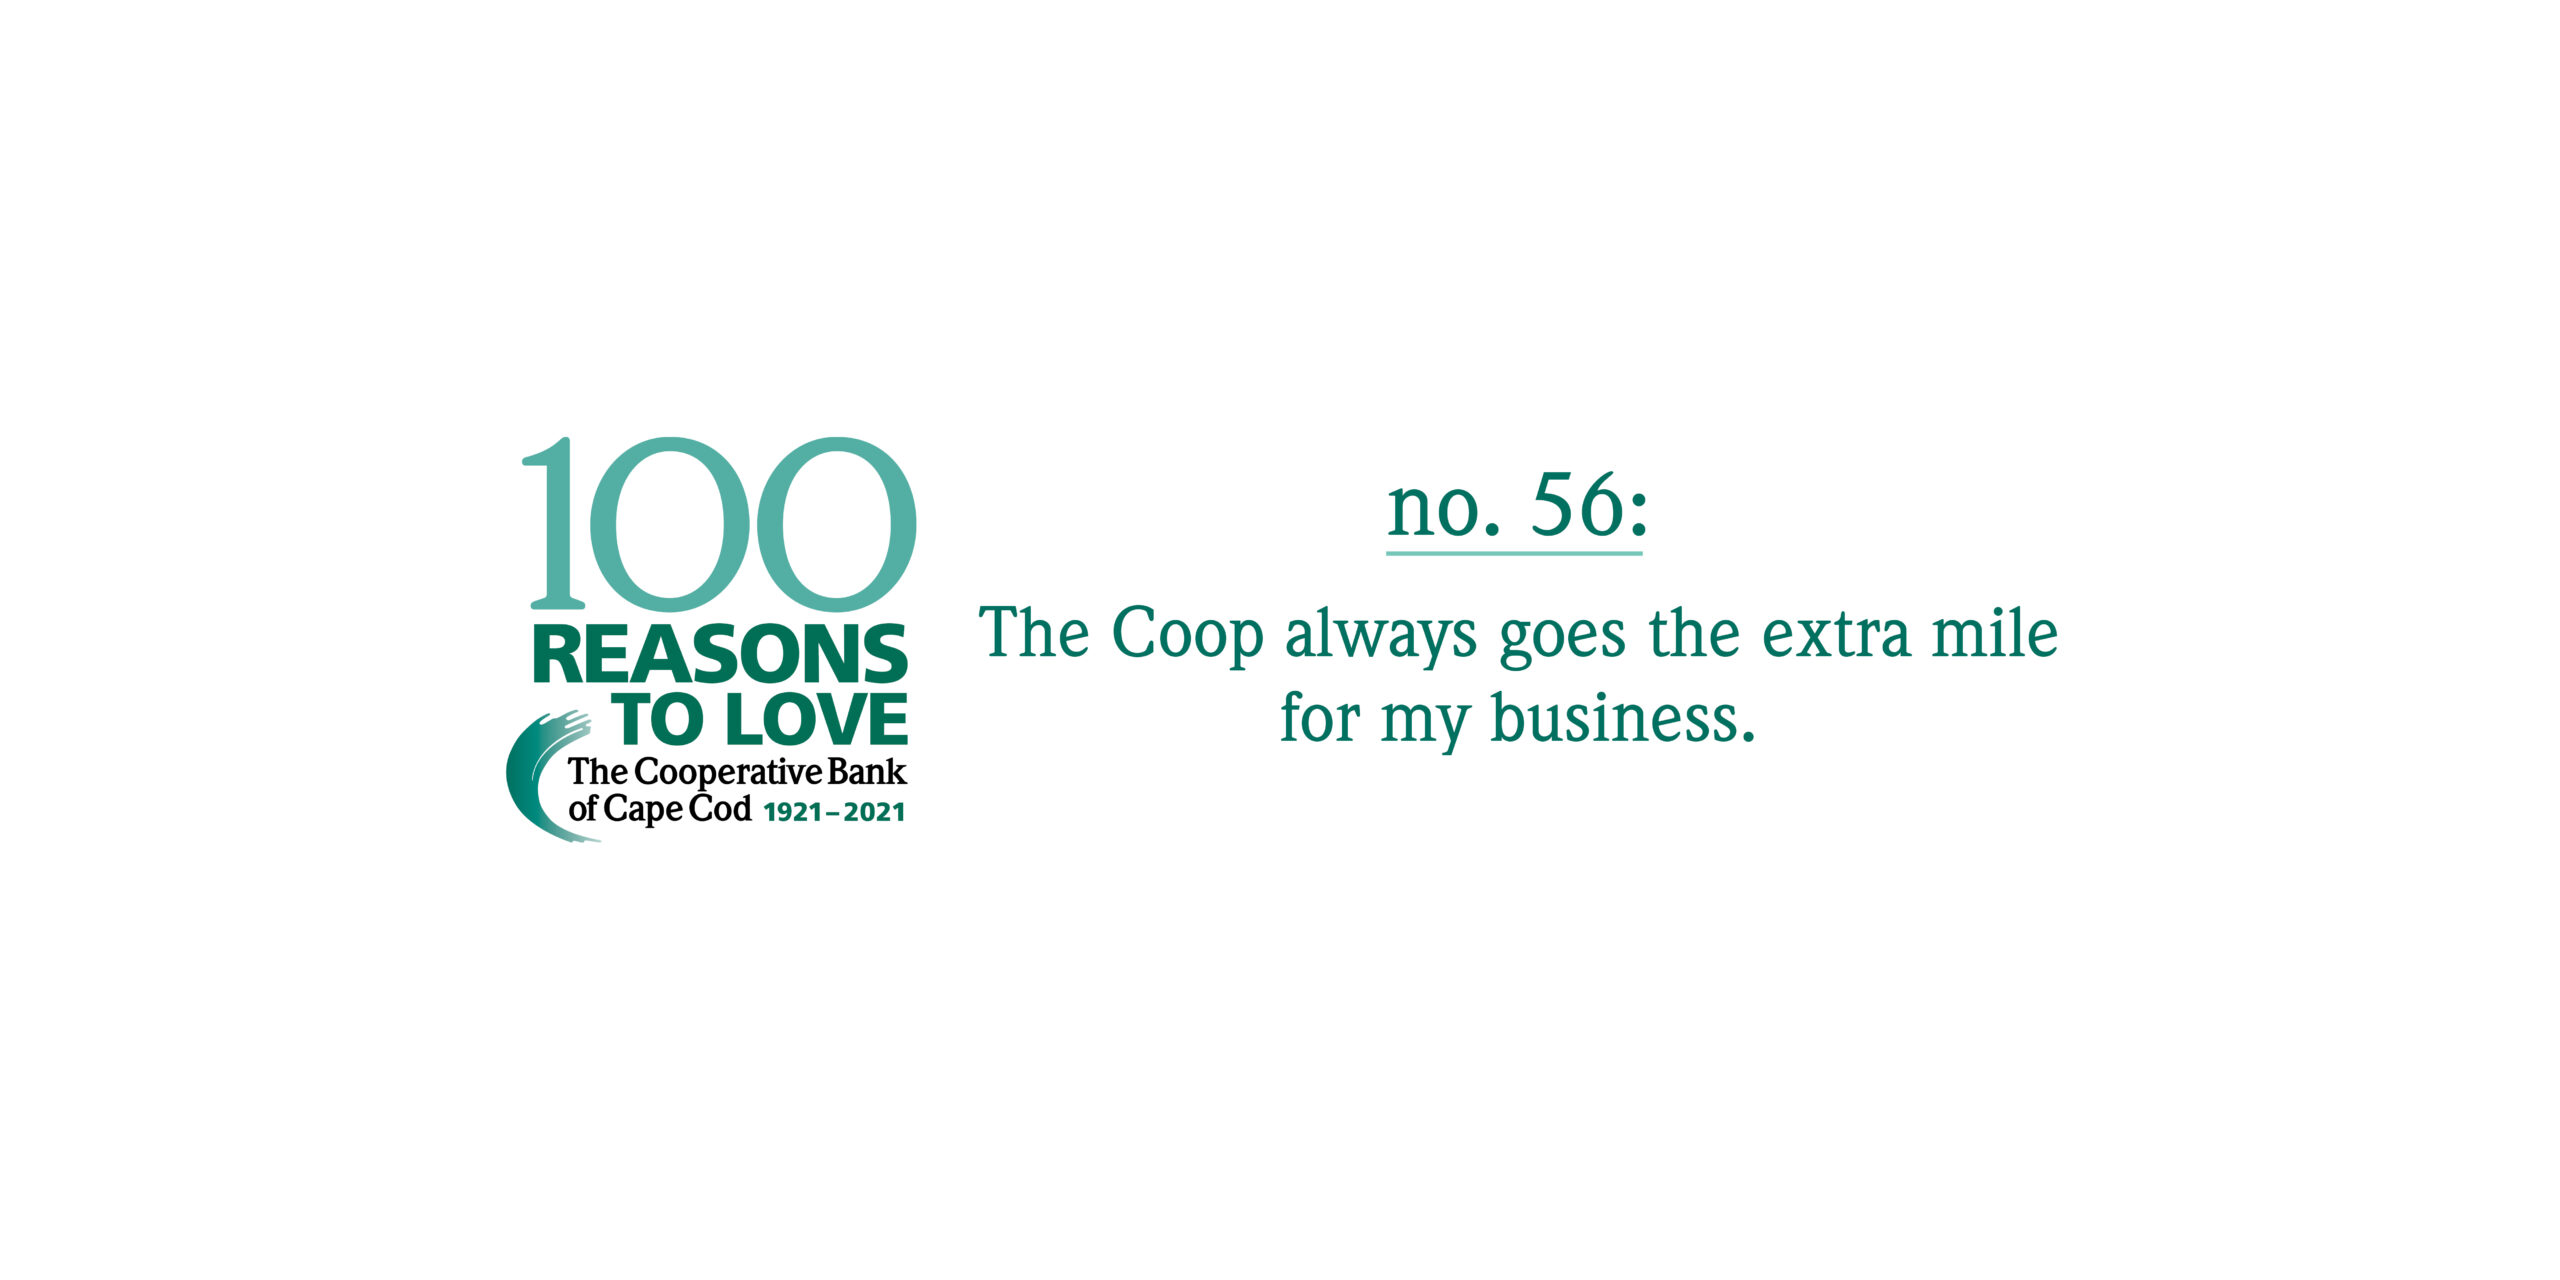 100 Reasons to Love The Coop - Reason #56: The Coop always goes the extra mile for my business.